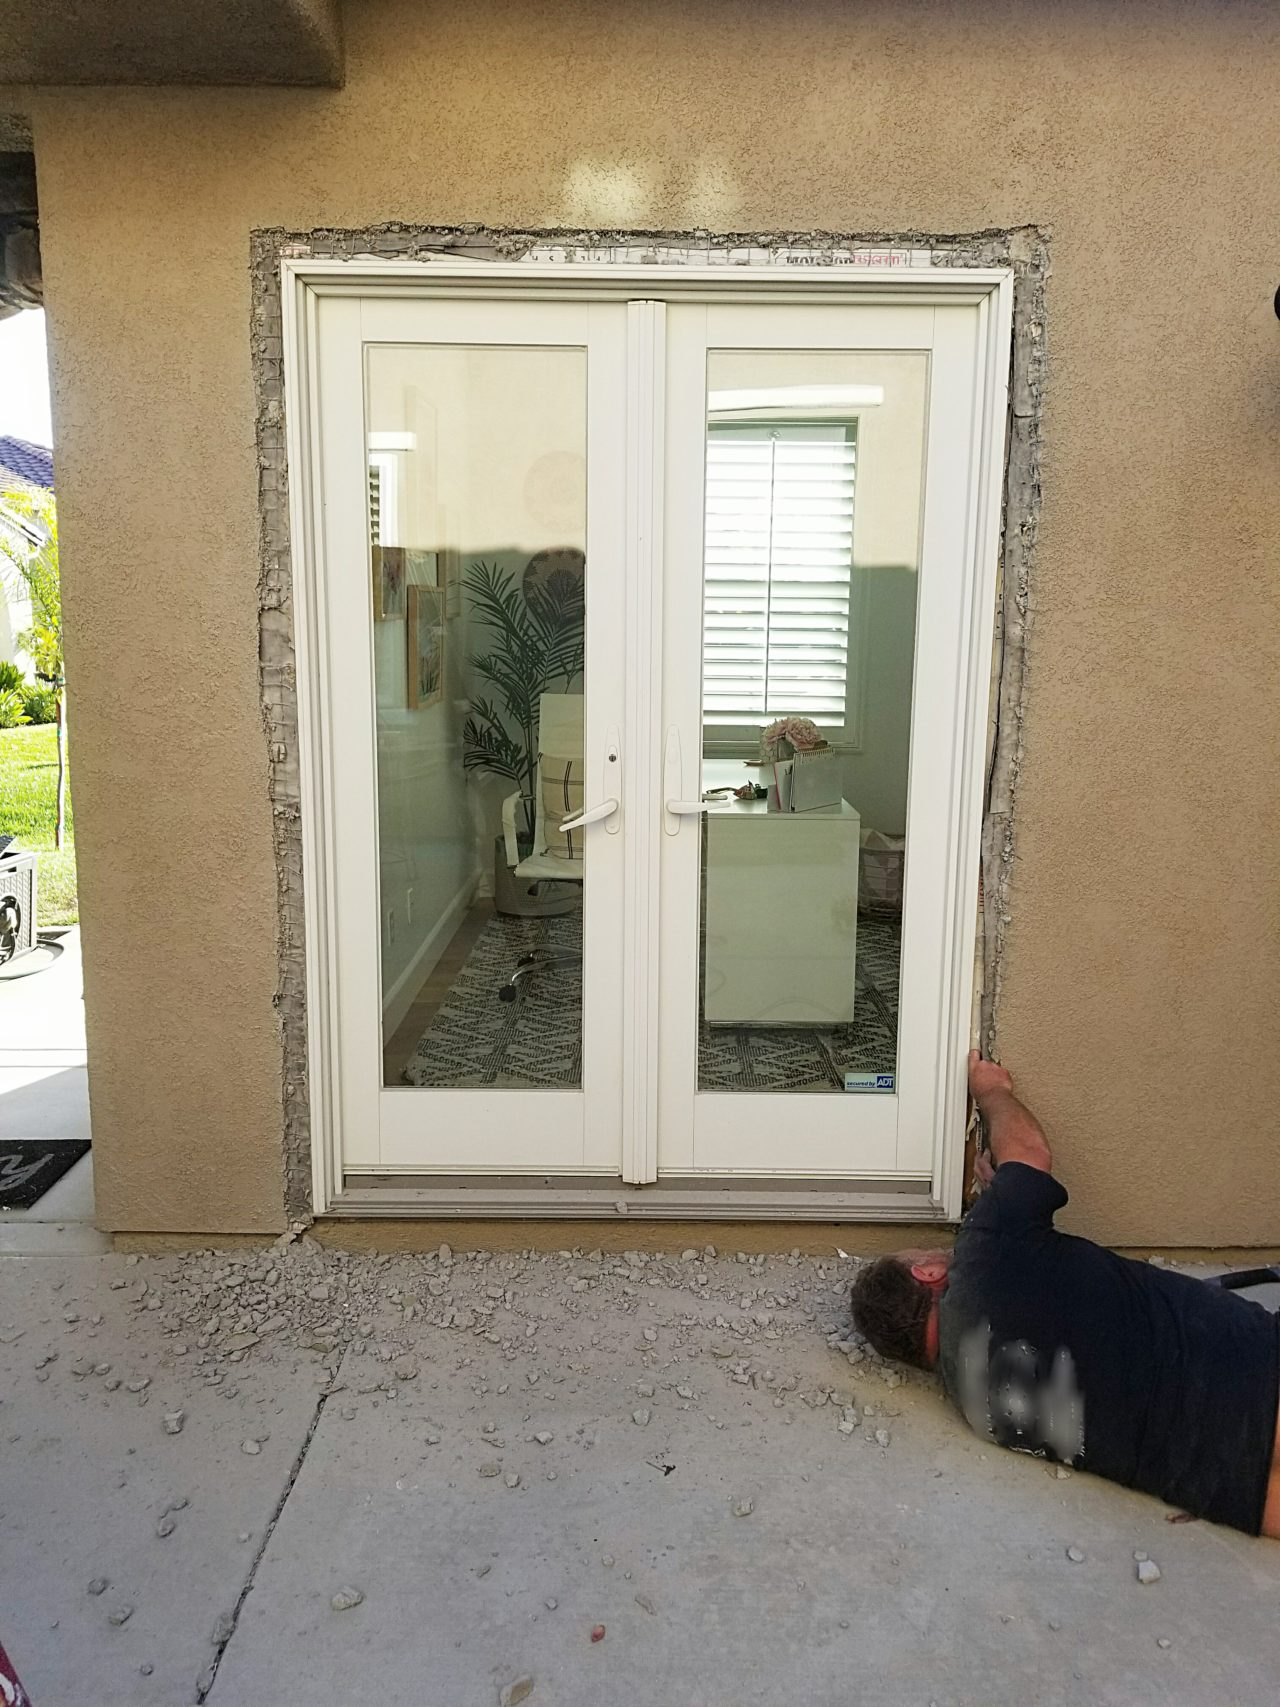 My Uncle Contractor Installed New Doors Please Consult Or Use A Professional For The Removal And Installation Of Your